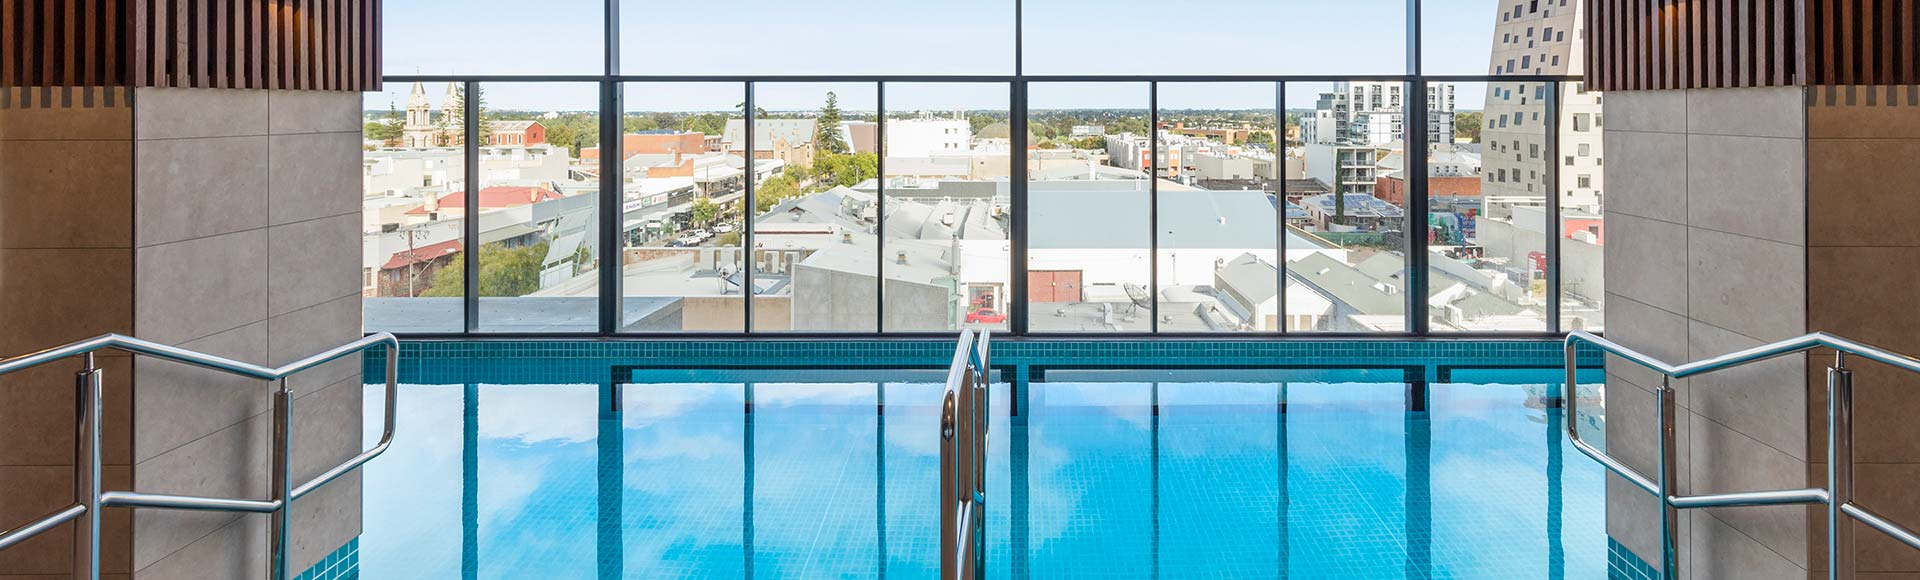 Outdoor swimming pool at Avani Adelaide